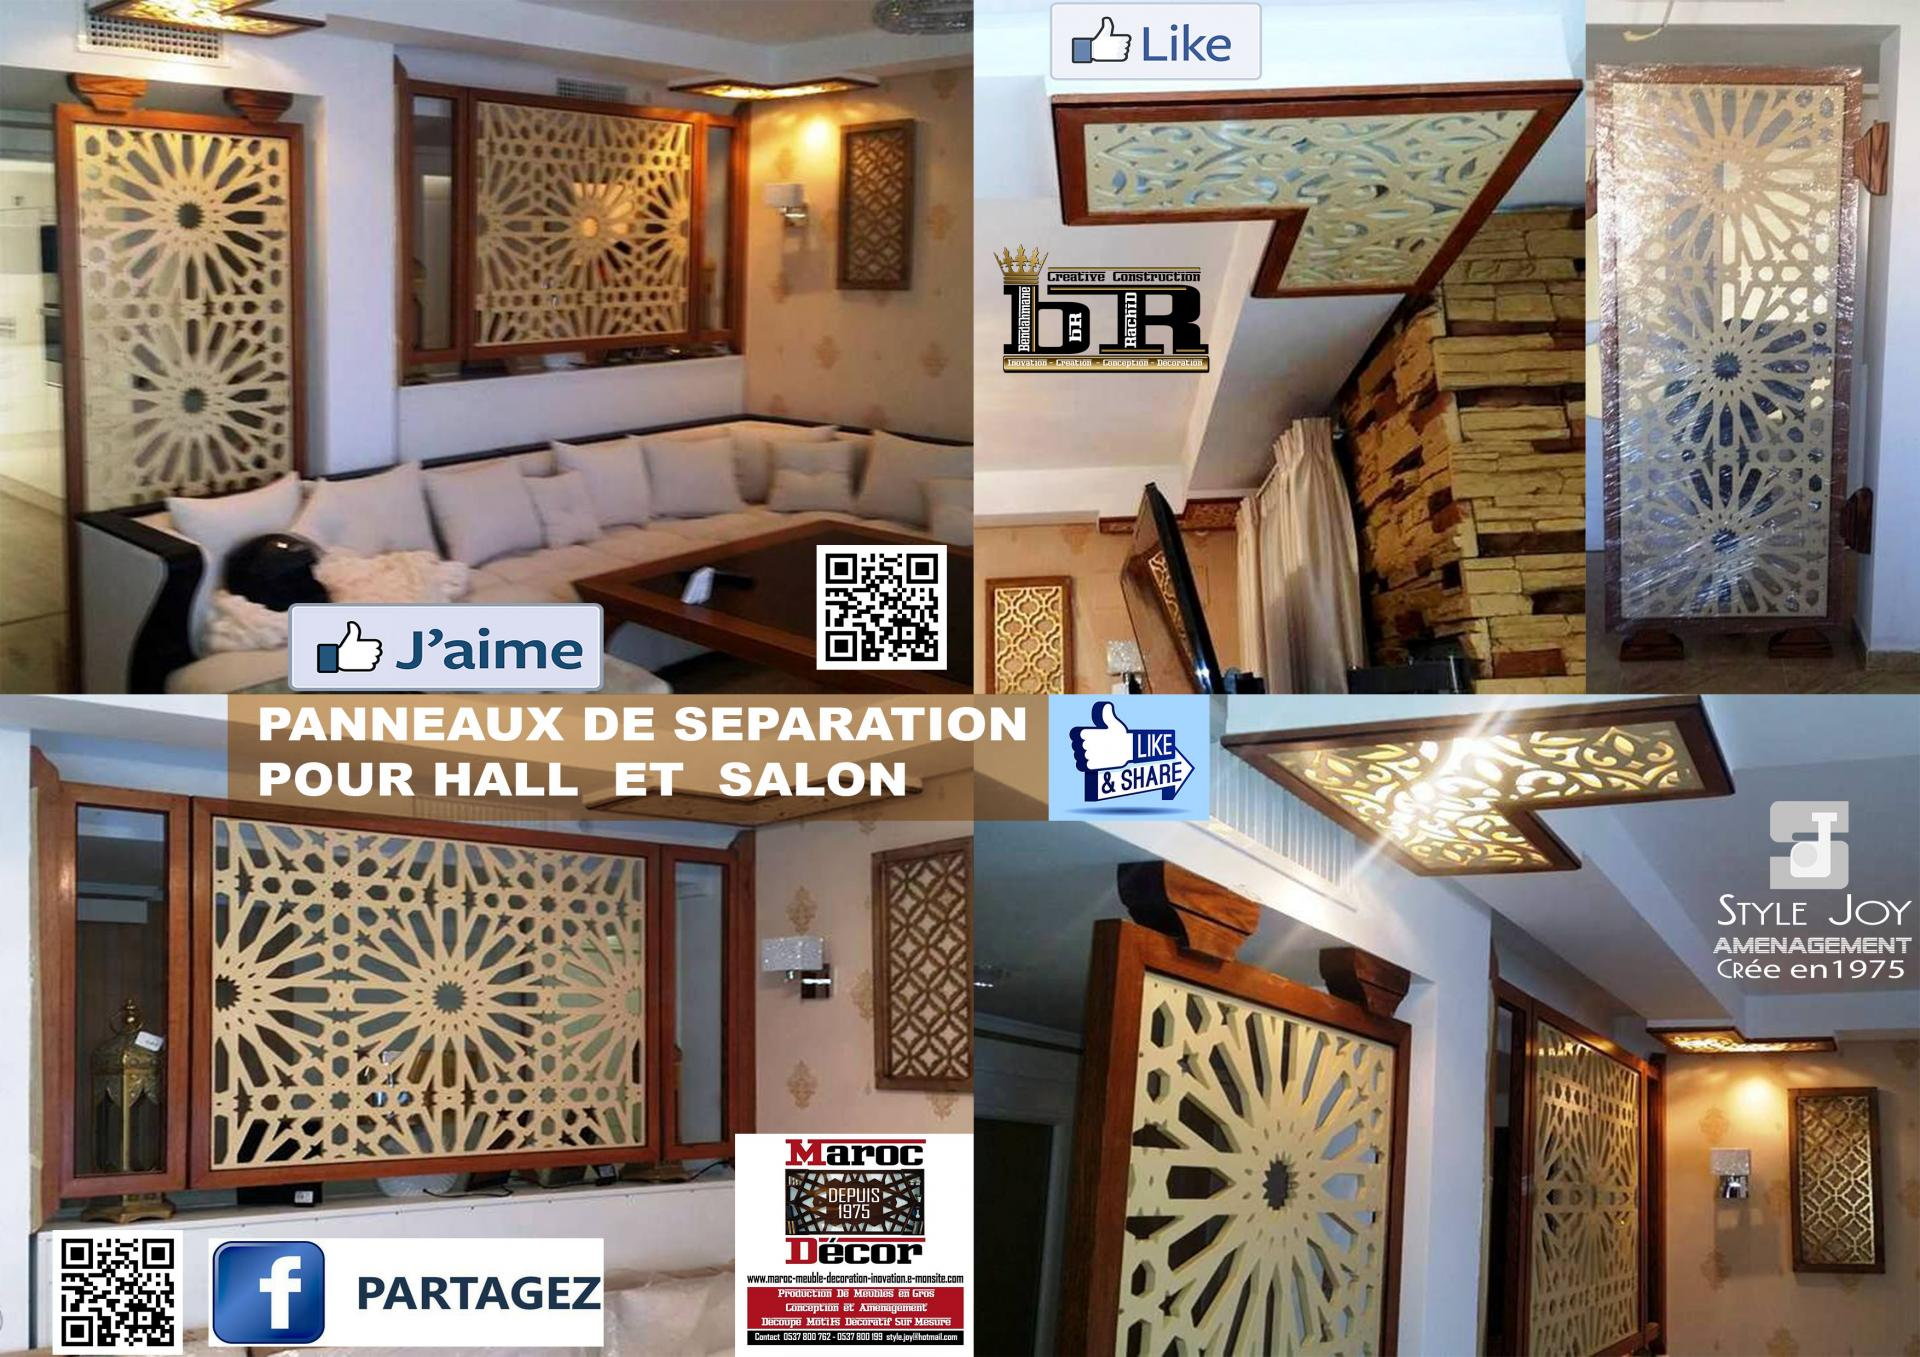 Maroc Decoration Interieur N1 En Mobilier Bureau Rabat Casablanca Deco Inovation